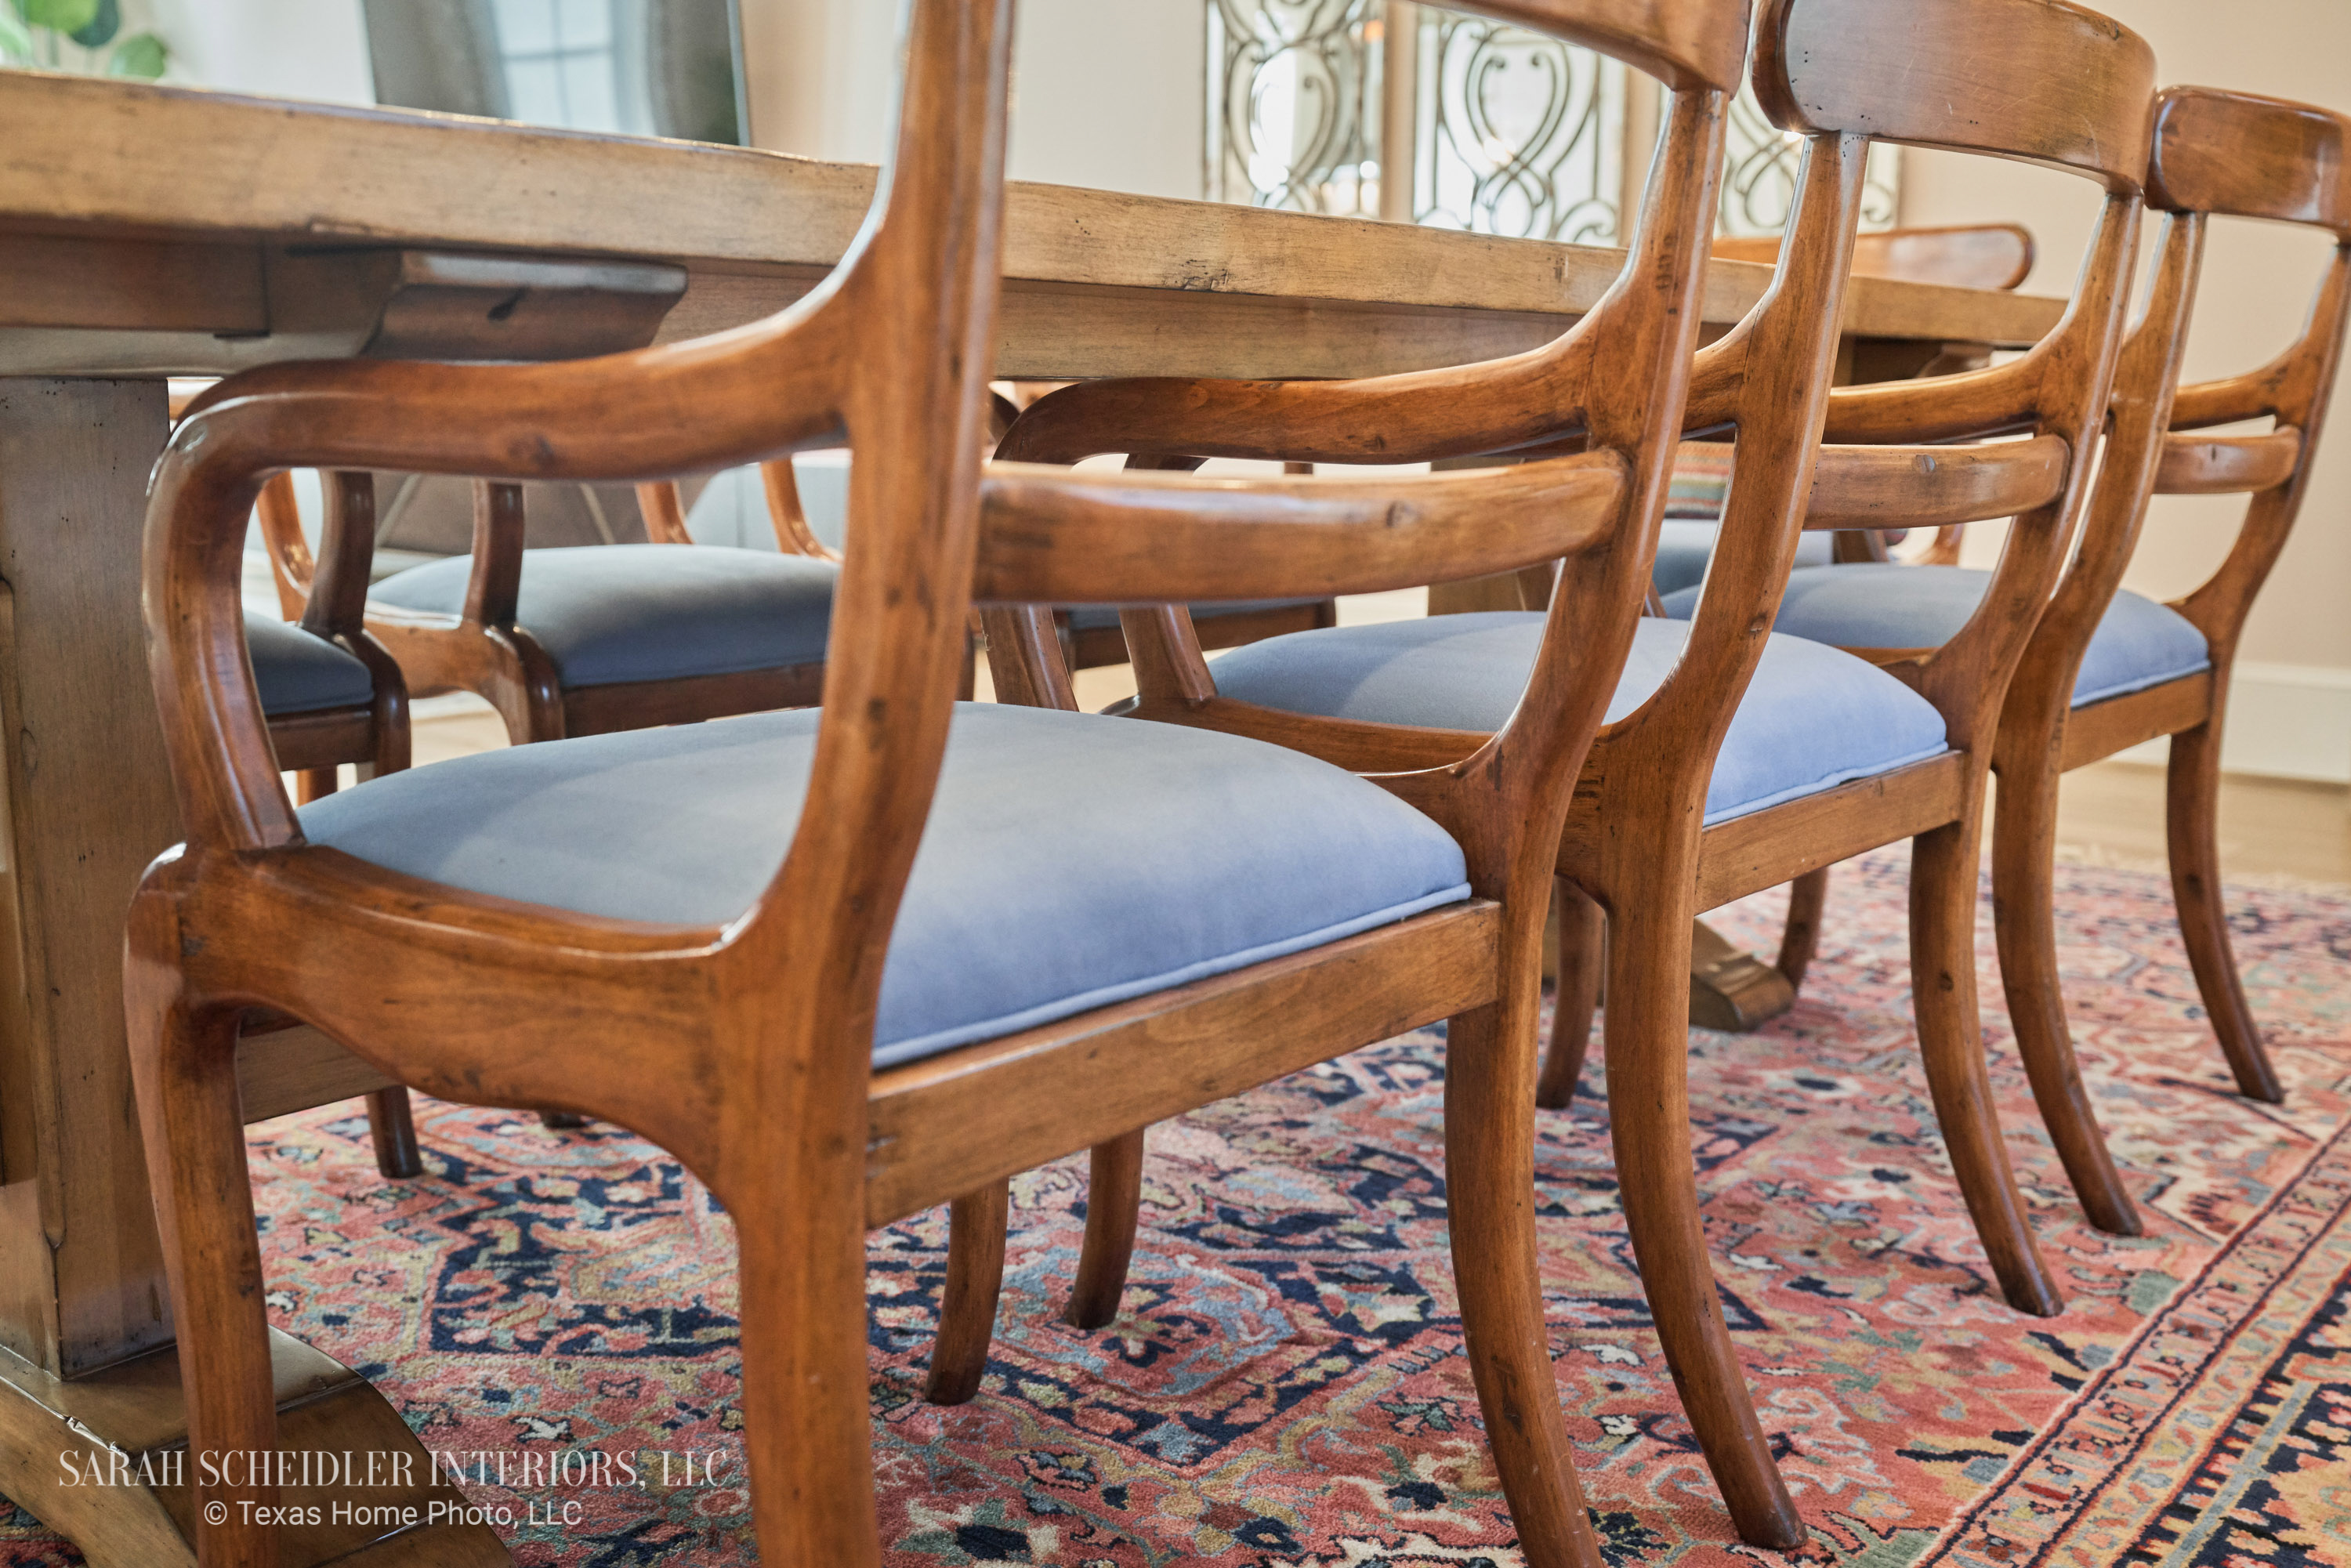 Antique Dining Set Reupholstered with Beautiful Blue Upholstery